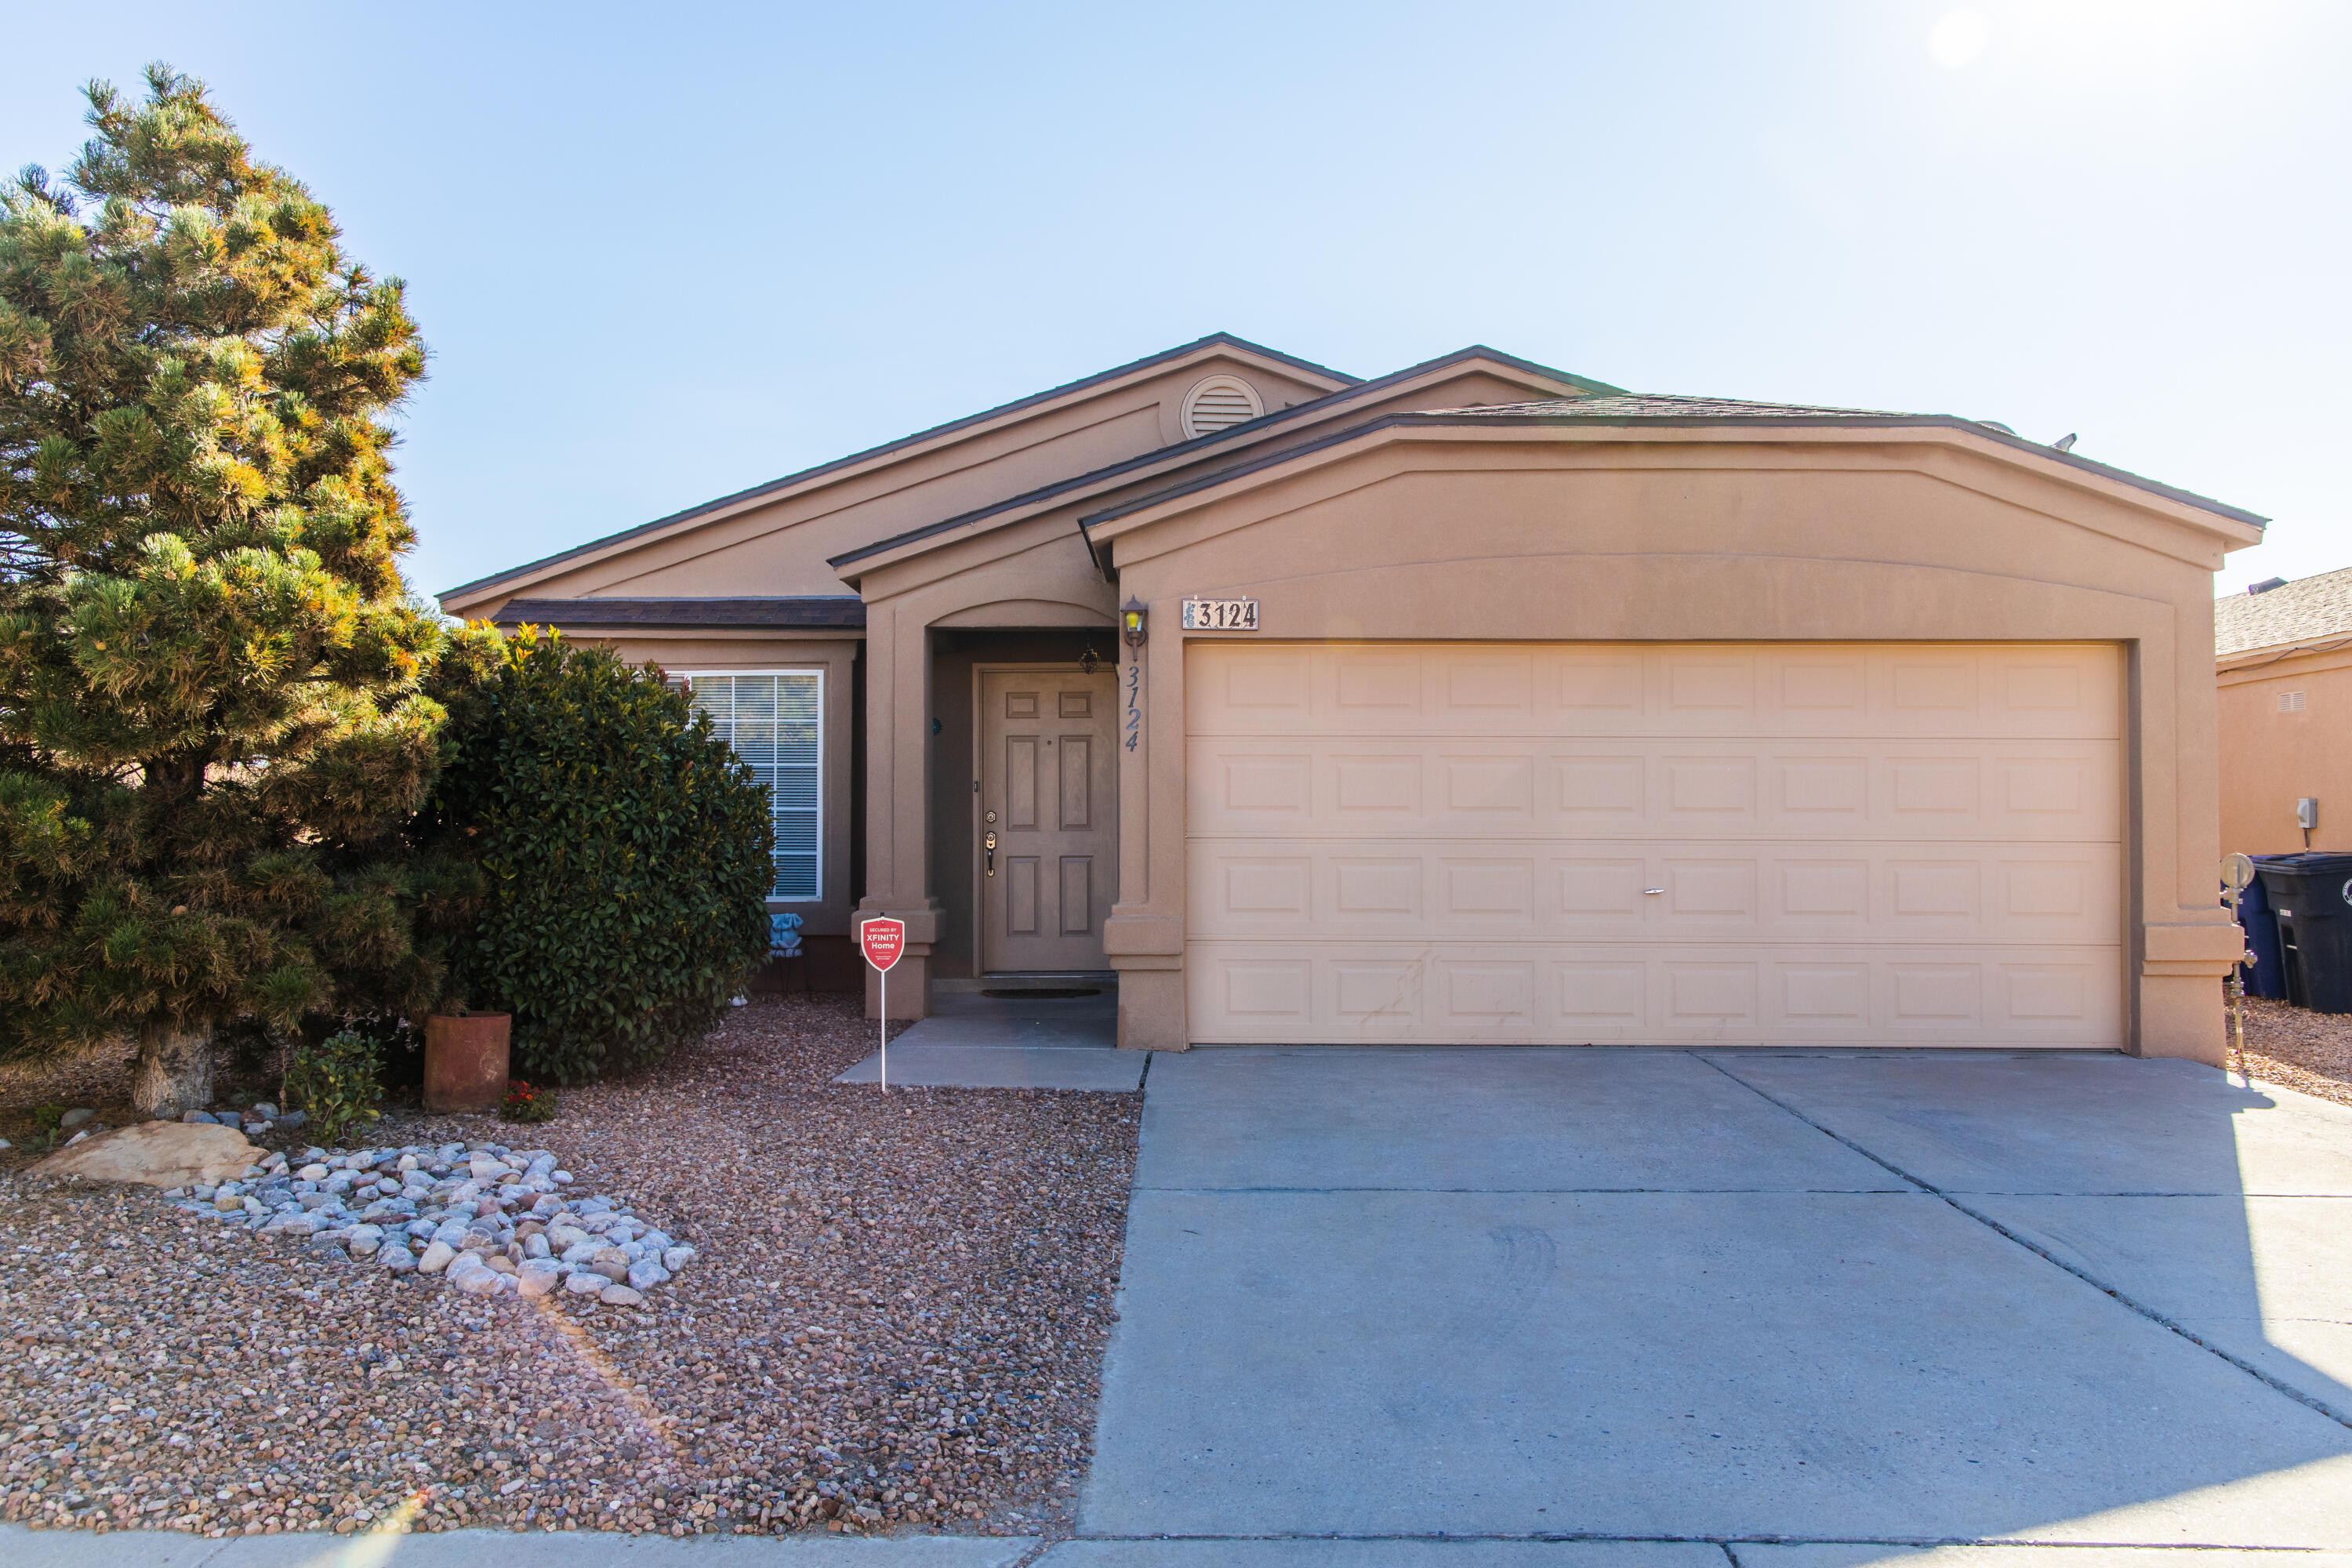 Welcome to this Cozy 3 Bedroom, 2 Bath Home. All New Paint, xeriscaped Backyard easy to maintain.